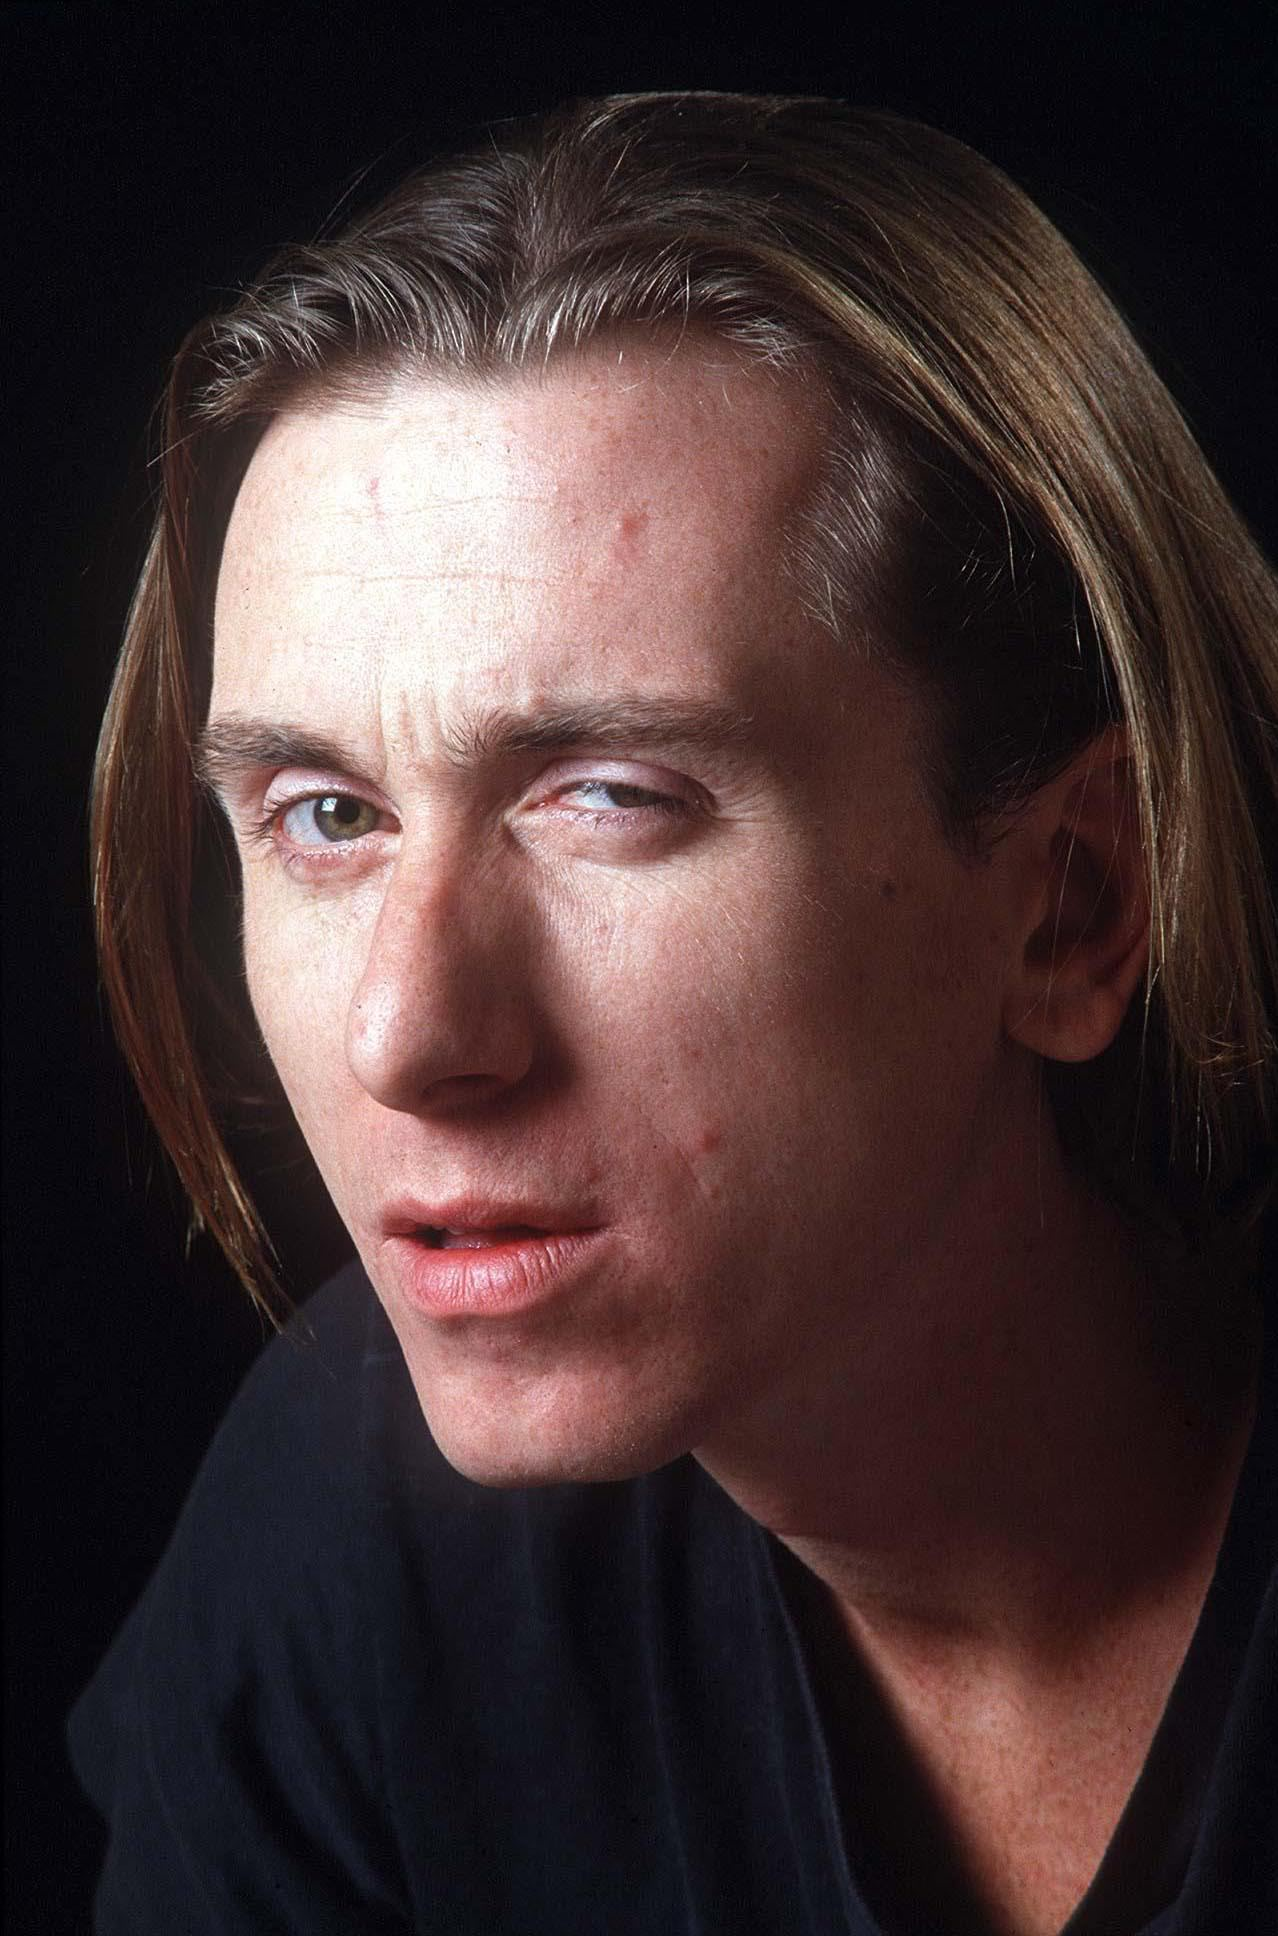 tim roth vincent van goghtim roth height, tim roth films, tim roth gif, tim roth wiki, tim roth imdb, tim roth tattoos, tim roth twin peaks, tim roth фильмография, tim roth grandfather, tim roth ryan gosling, tim roth vk, tim roth movies, tim roth 1900, tim roth 2017, tim roth piano, tim roth prada, tim roth russian, tim roth son, tim roth mini series, tim roth vincent van gogh